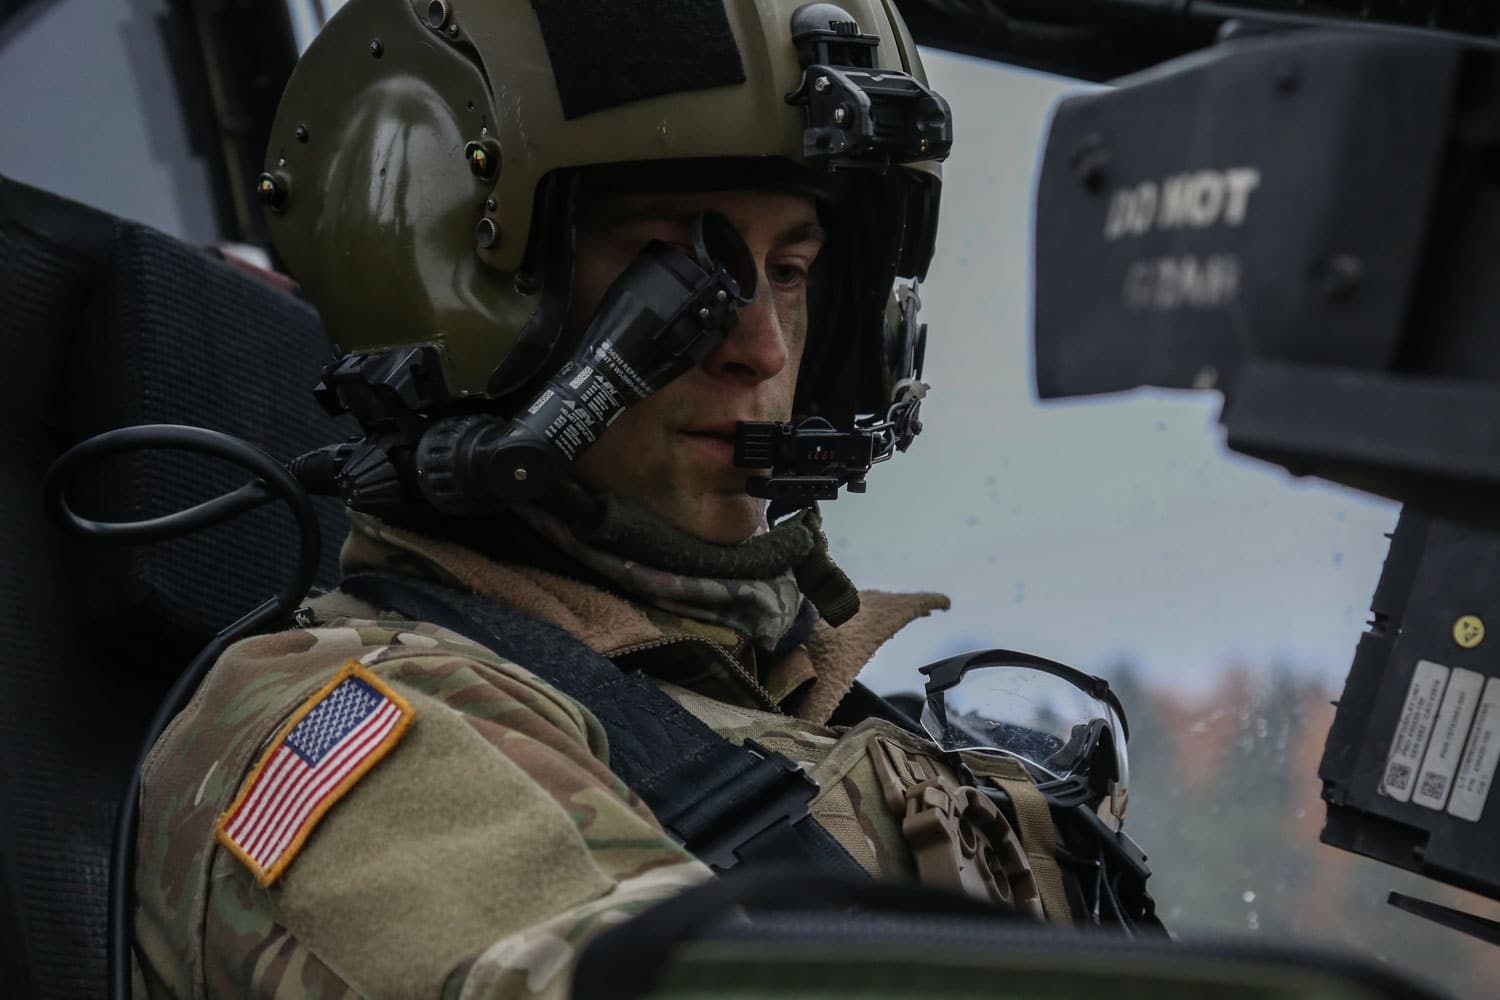 A U.S. Soldier of the 1st Battalion, 3rd Aviation Regiment performs pre-flight checks on a AH-64D Apache Longbow Helicopter during exercise Allied Spirit VII at the U.S. Army's Joint Multinational Readiness Center in Hohenfels, Germany.